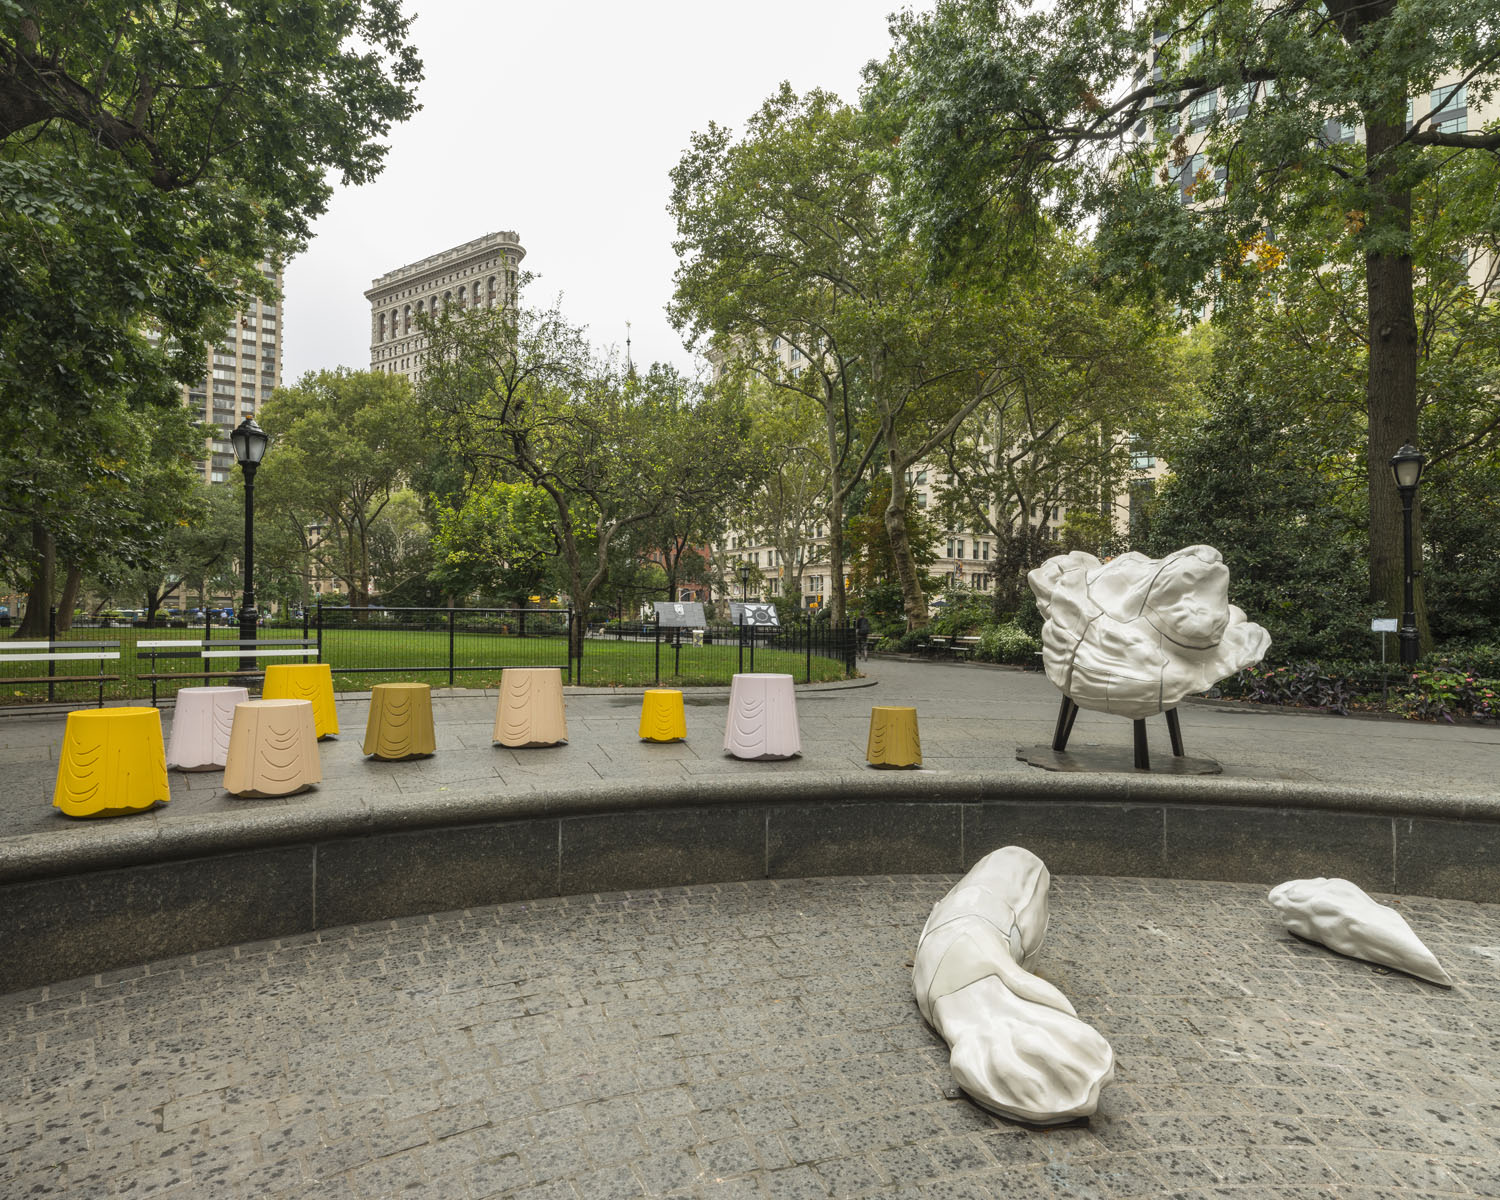 Full Steam Ahead , public installation at Madison Square Park, New York, NY, 2018-19. Photograph by Kris Graves. Courtesy the artist and Pace Gallery.